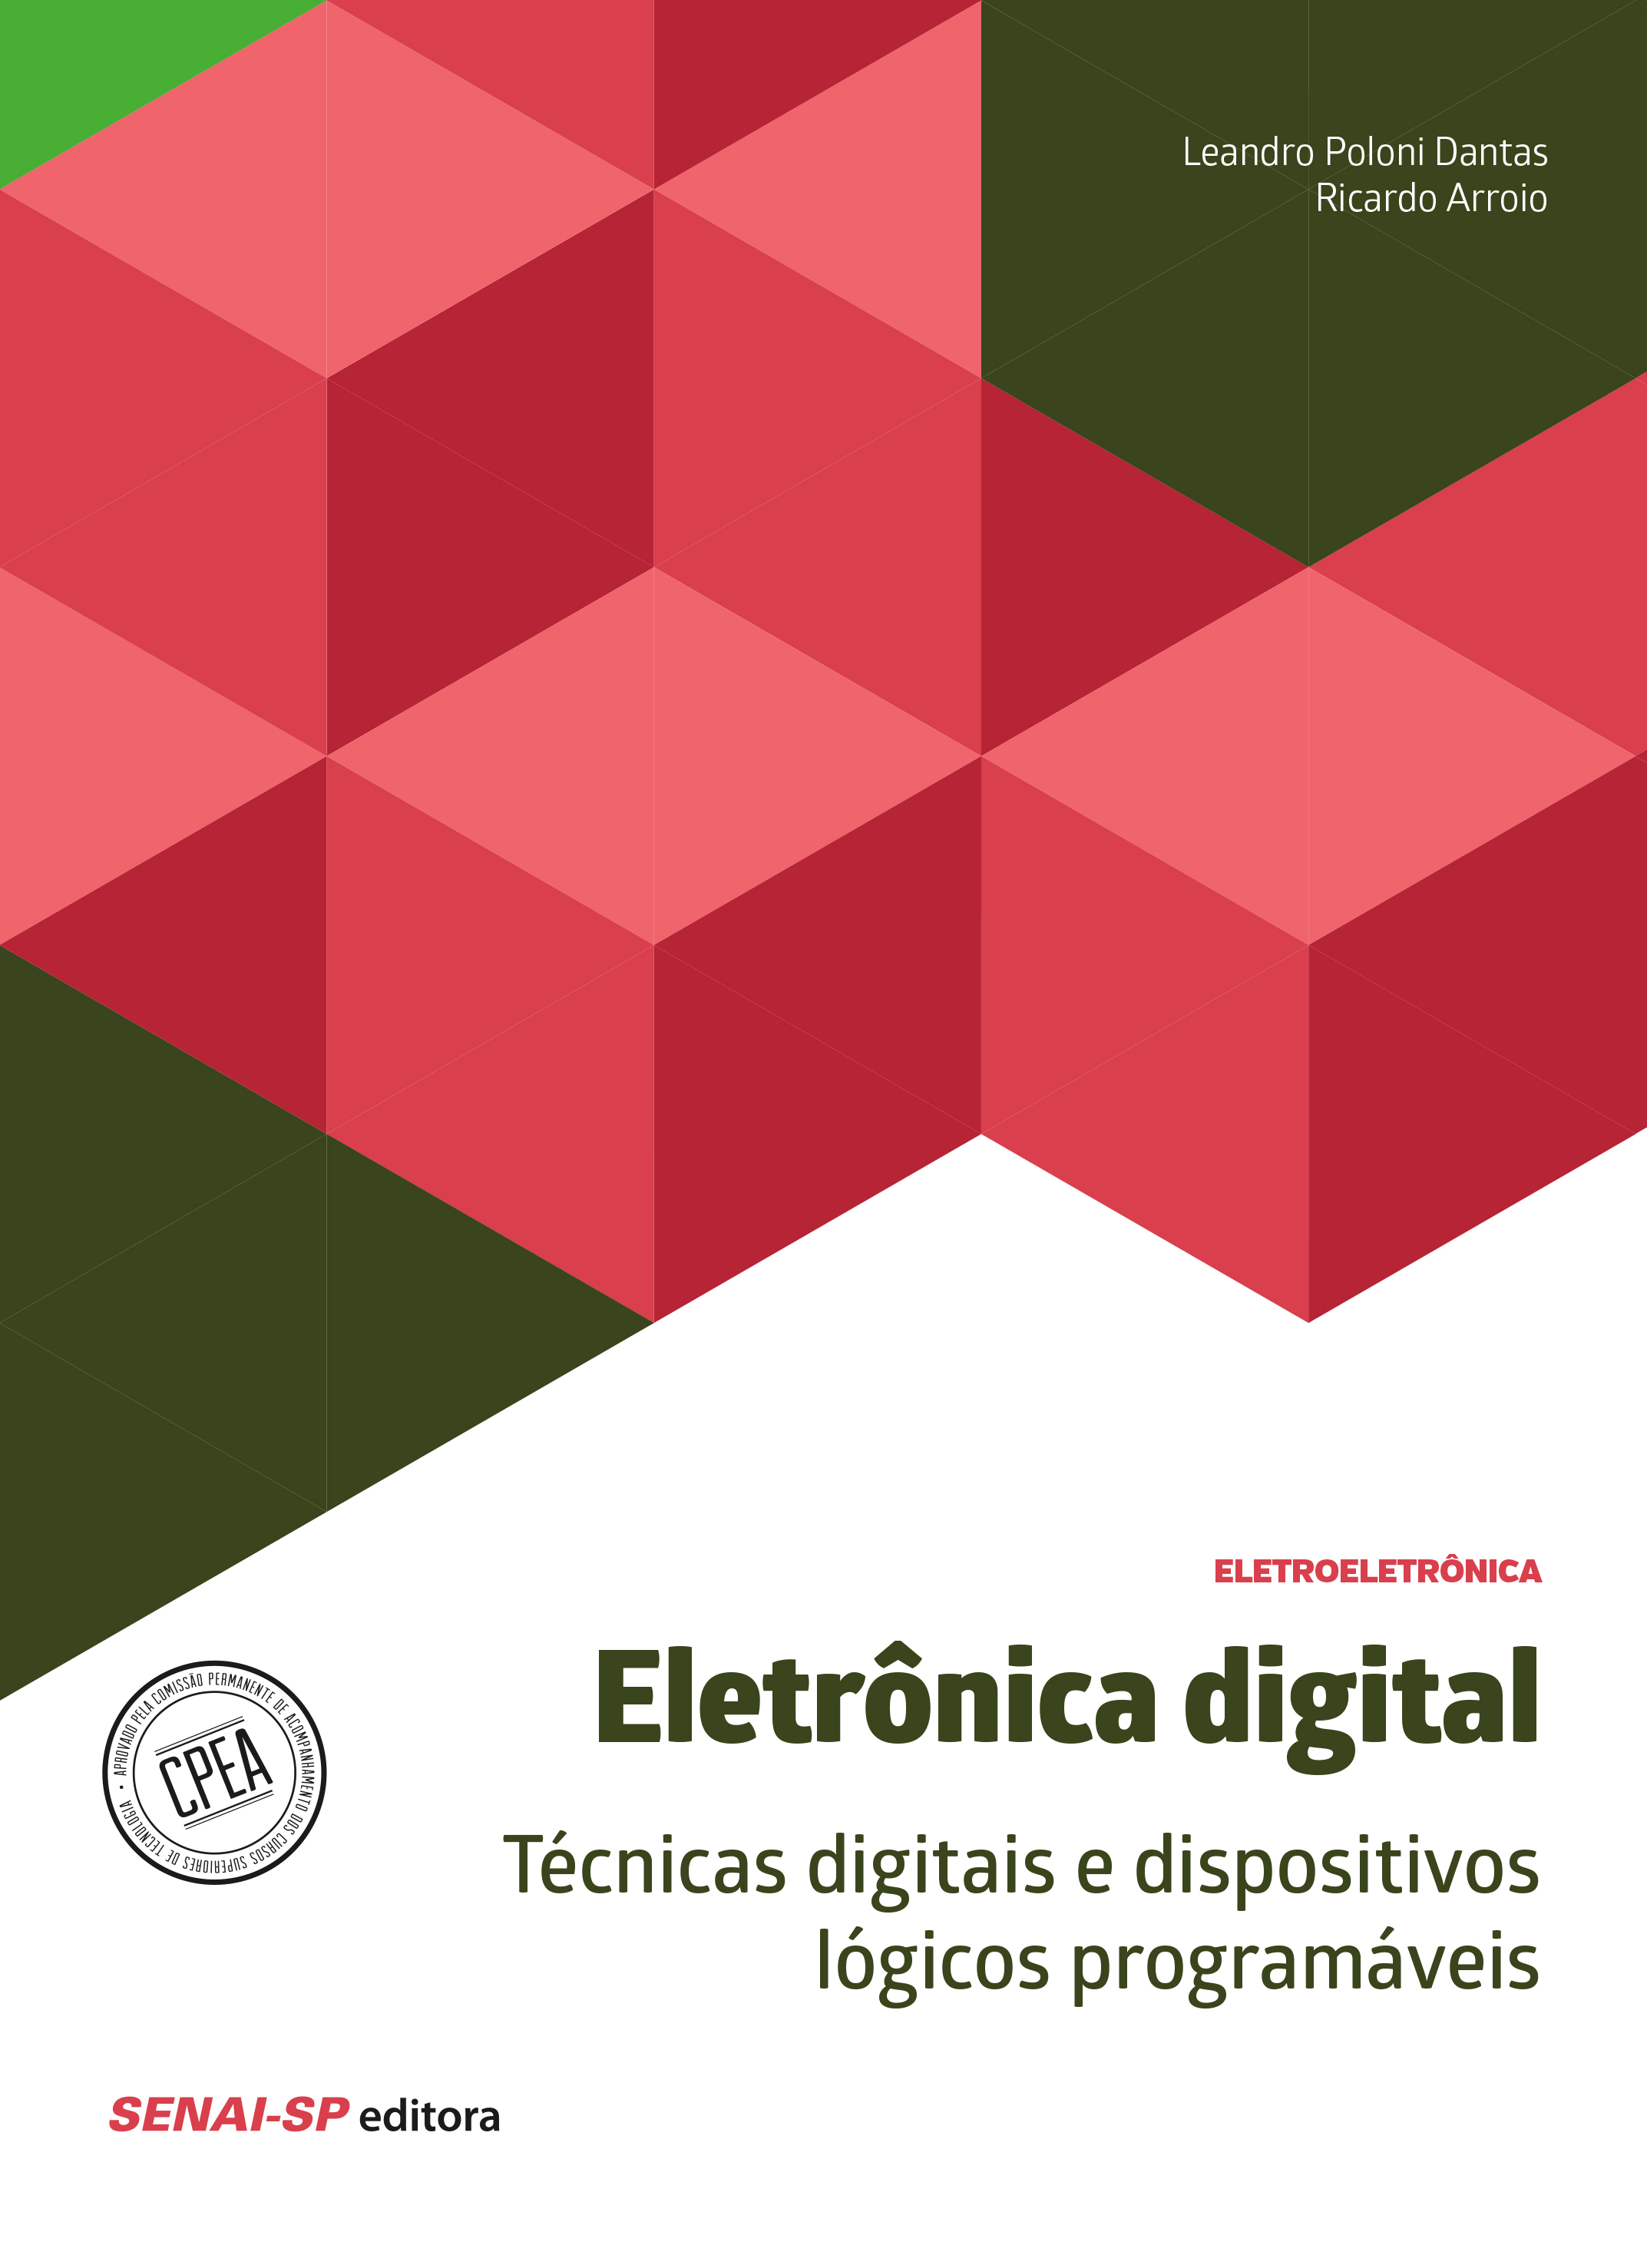 Digital Electronics - Digital techniques and programmable logic devices